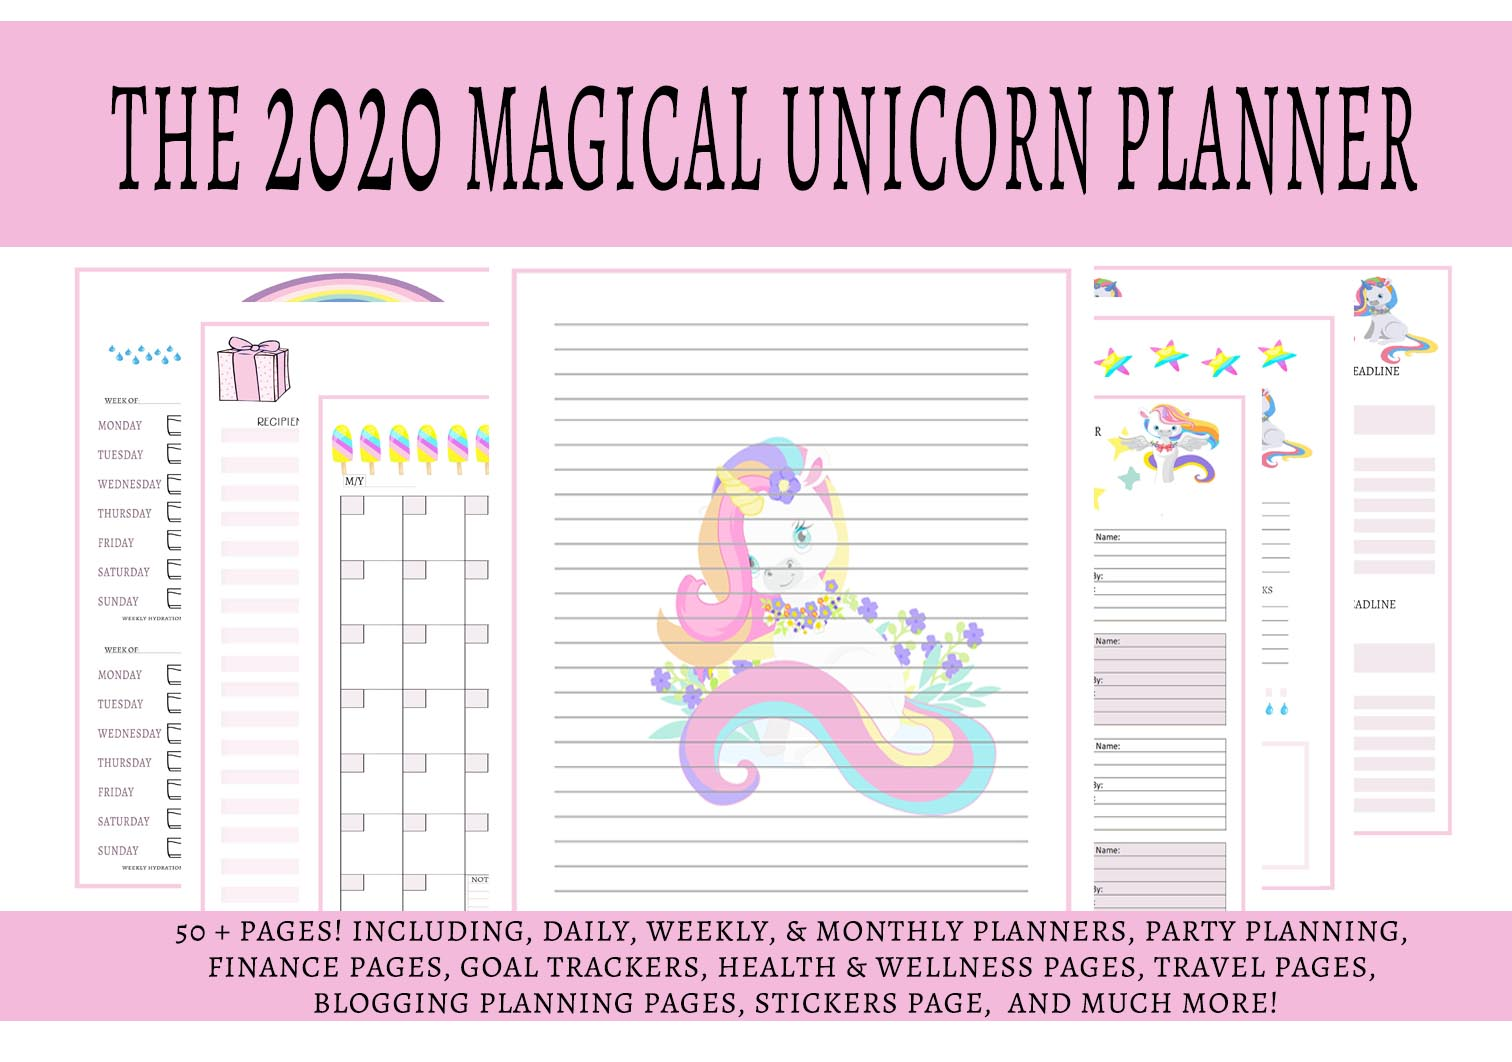 Download Free The 2020 Magical Unicorn Life Planner A4 Graphic By Capeairforce for Cricut Explore, Silhouette and other cutting machines.